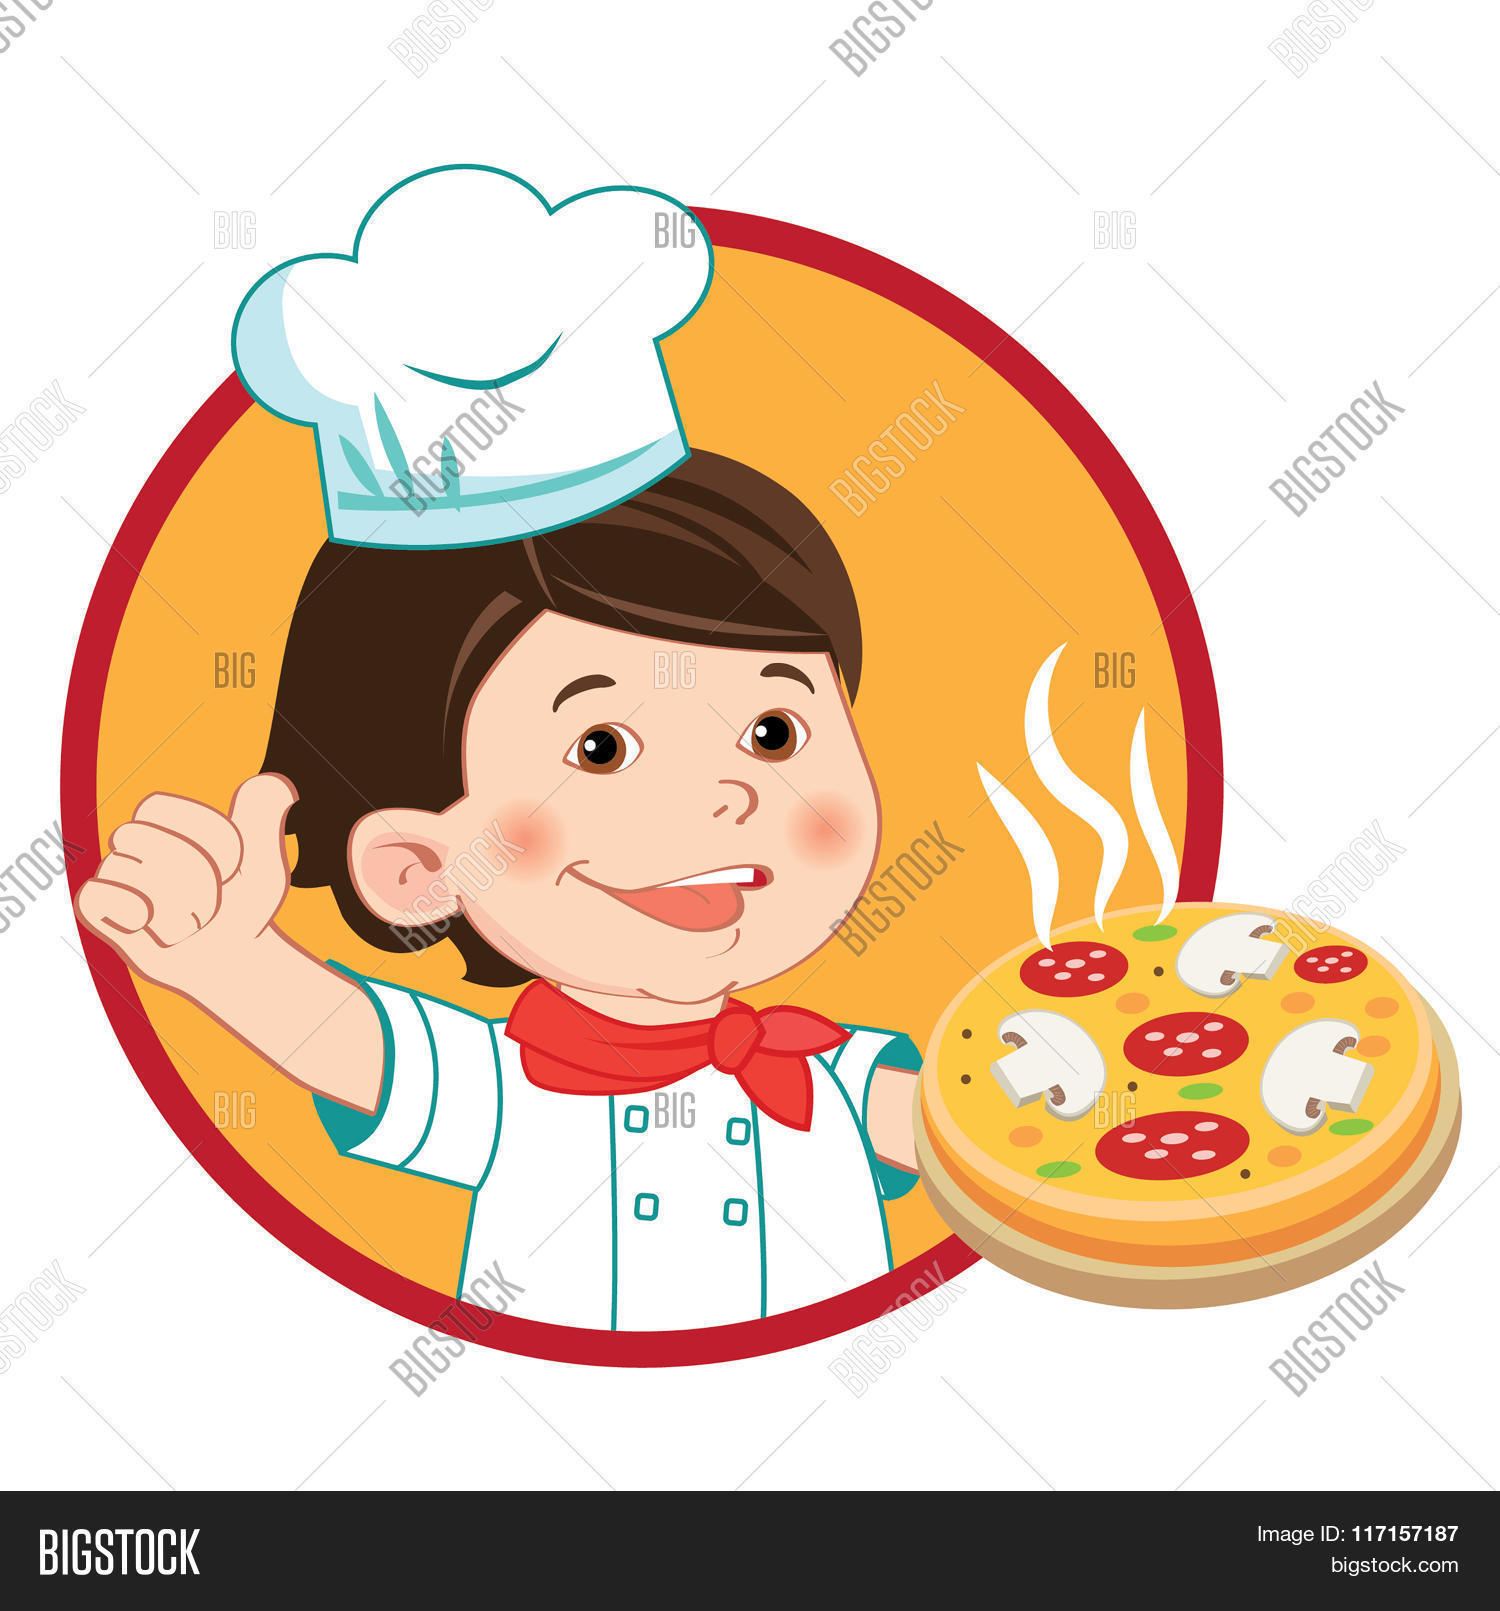 Selection of cartoons on cooking kitchens food and eating - Small Cook With Pizza Vector Illustration Isolated On A White Background Vector Character